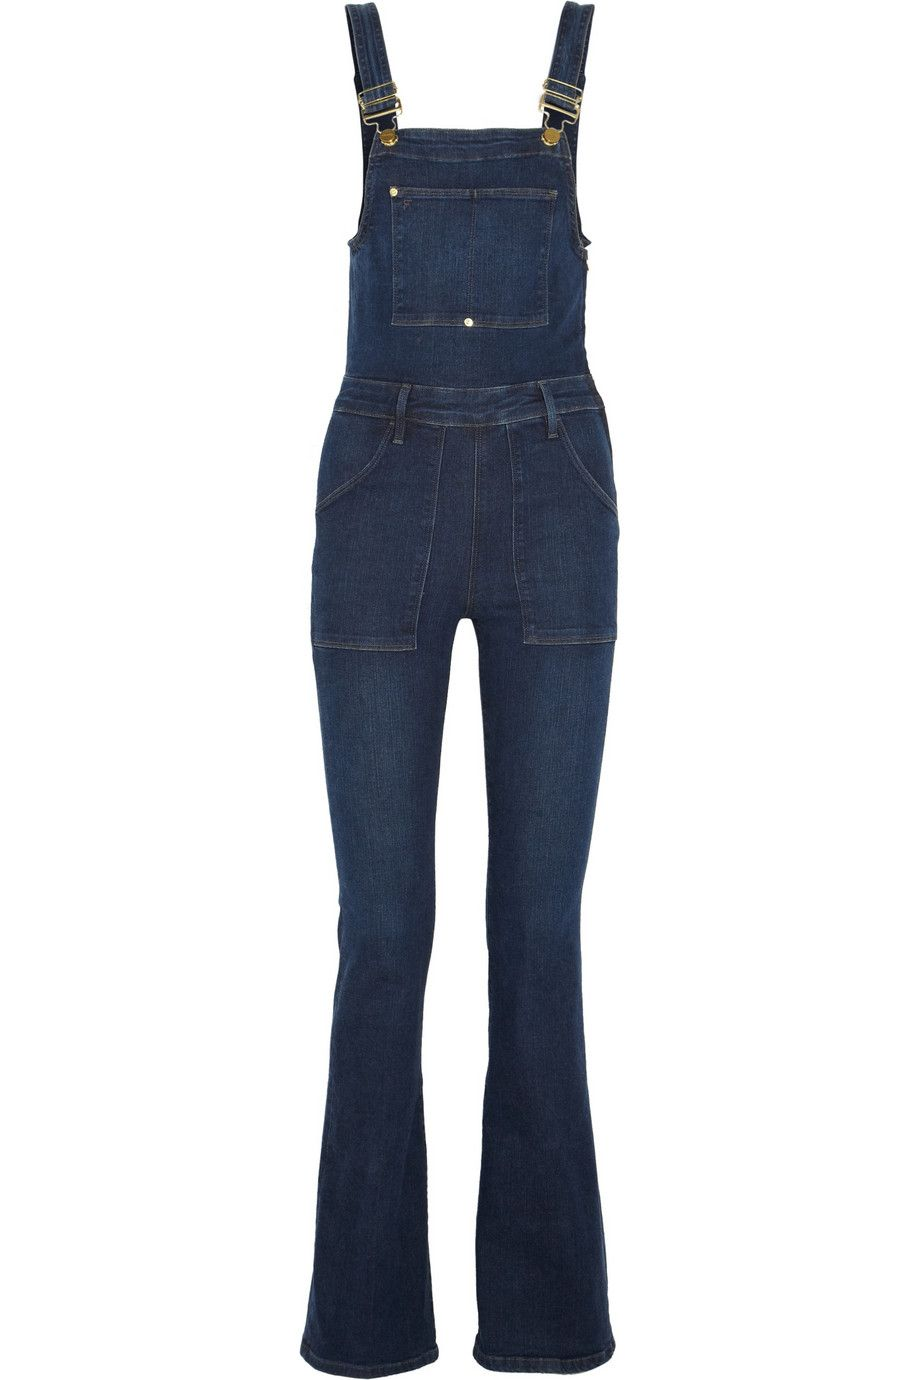 70s style overalls from Frame Denim | Beautiful fashion ideas ...